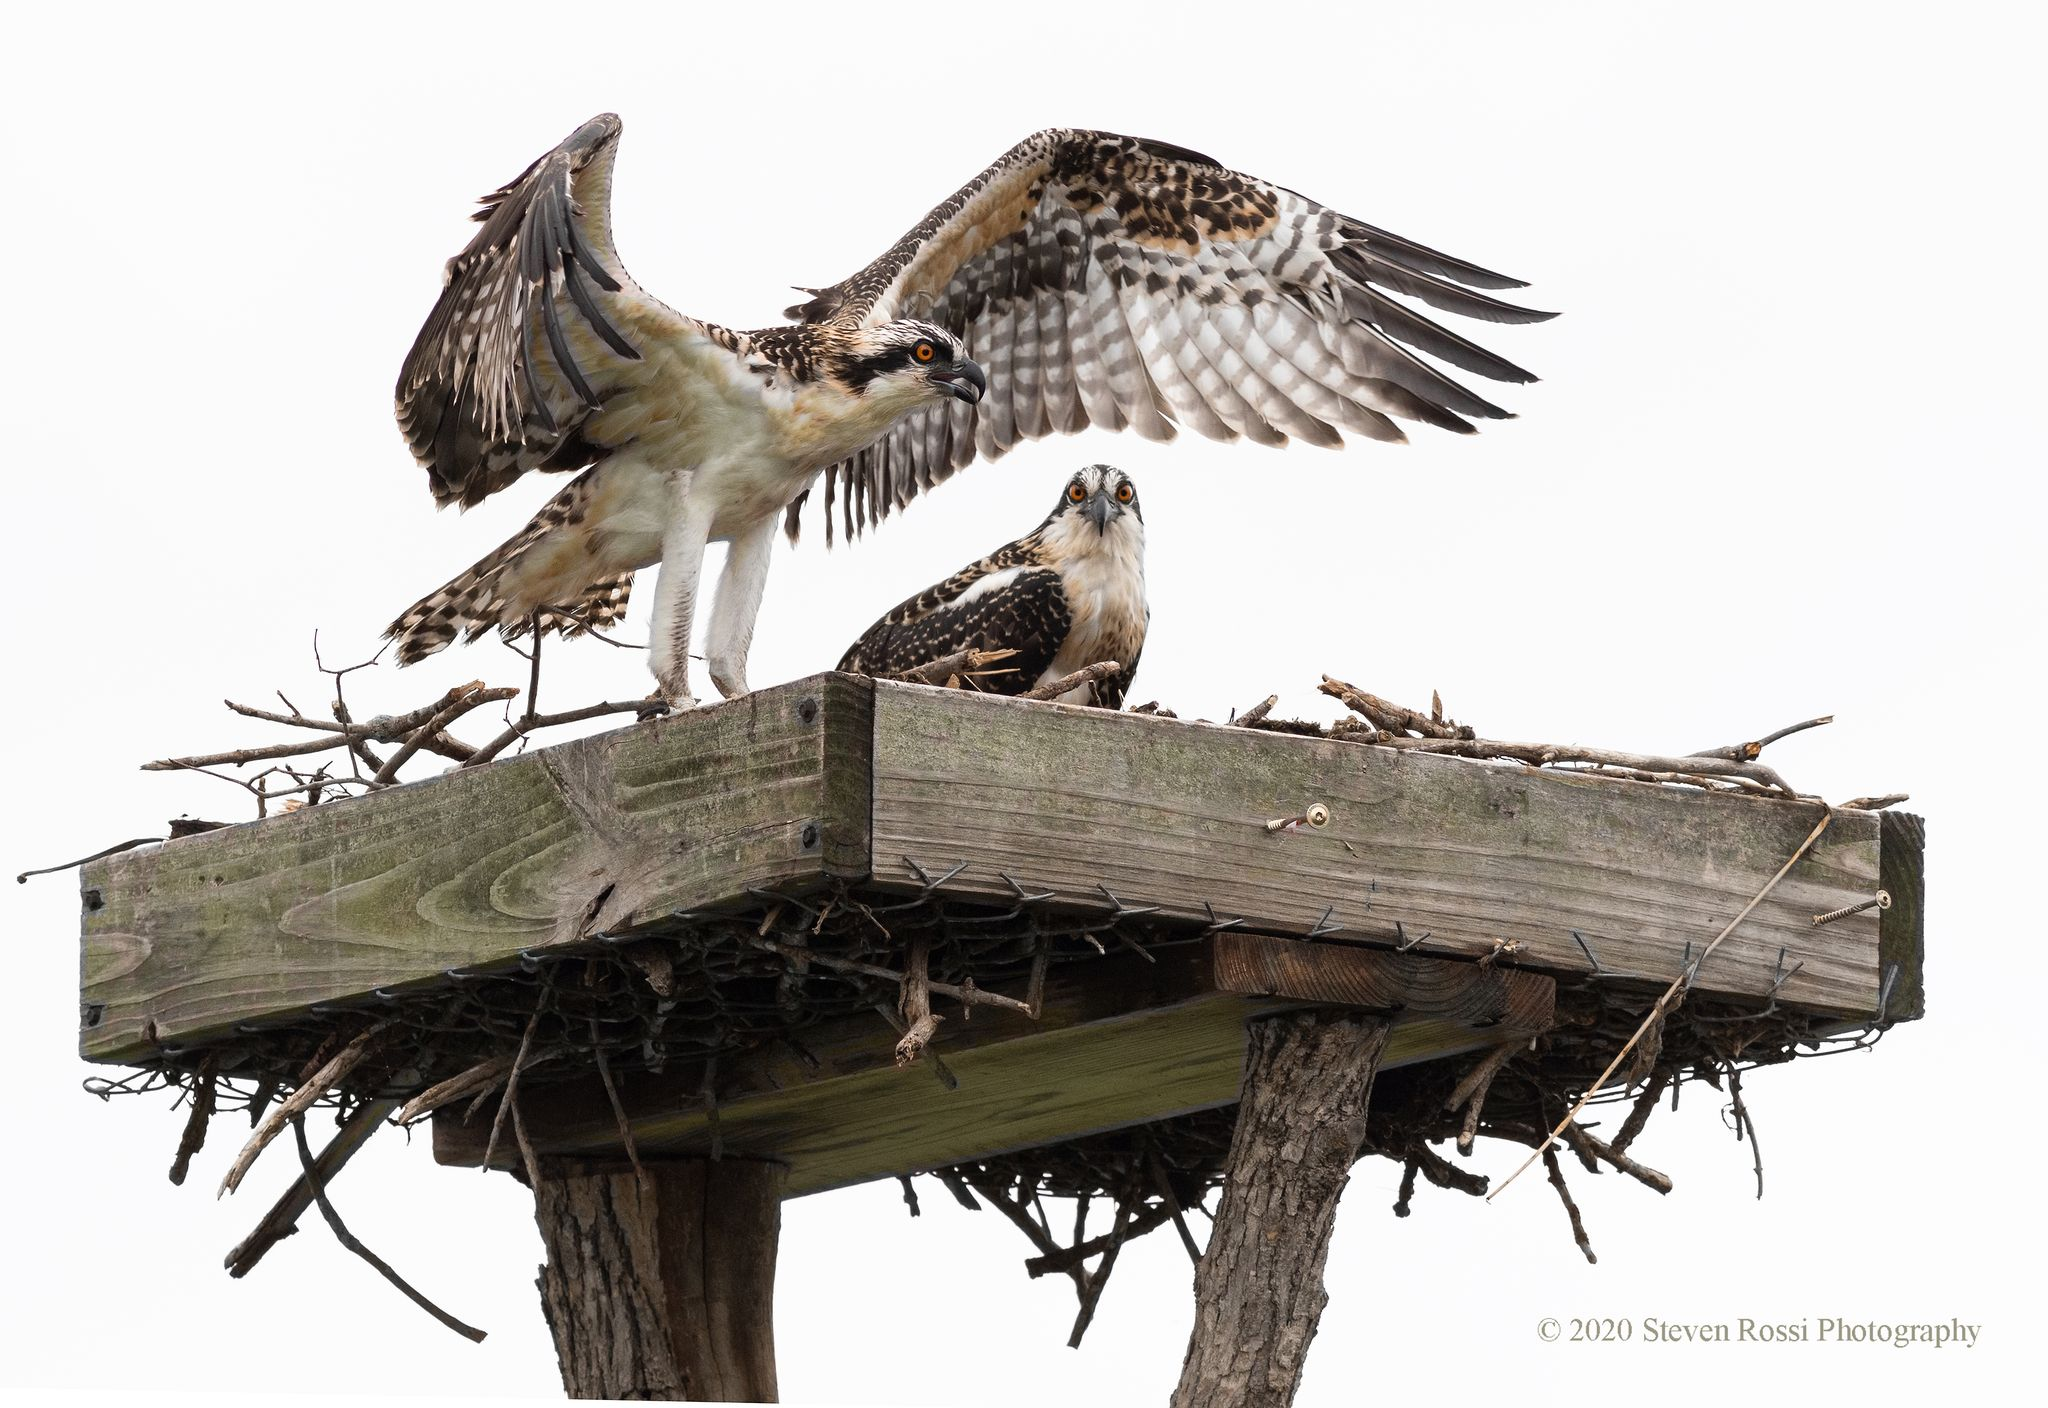 Rescue of Two Osprey Chicks